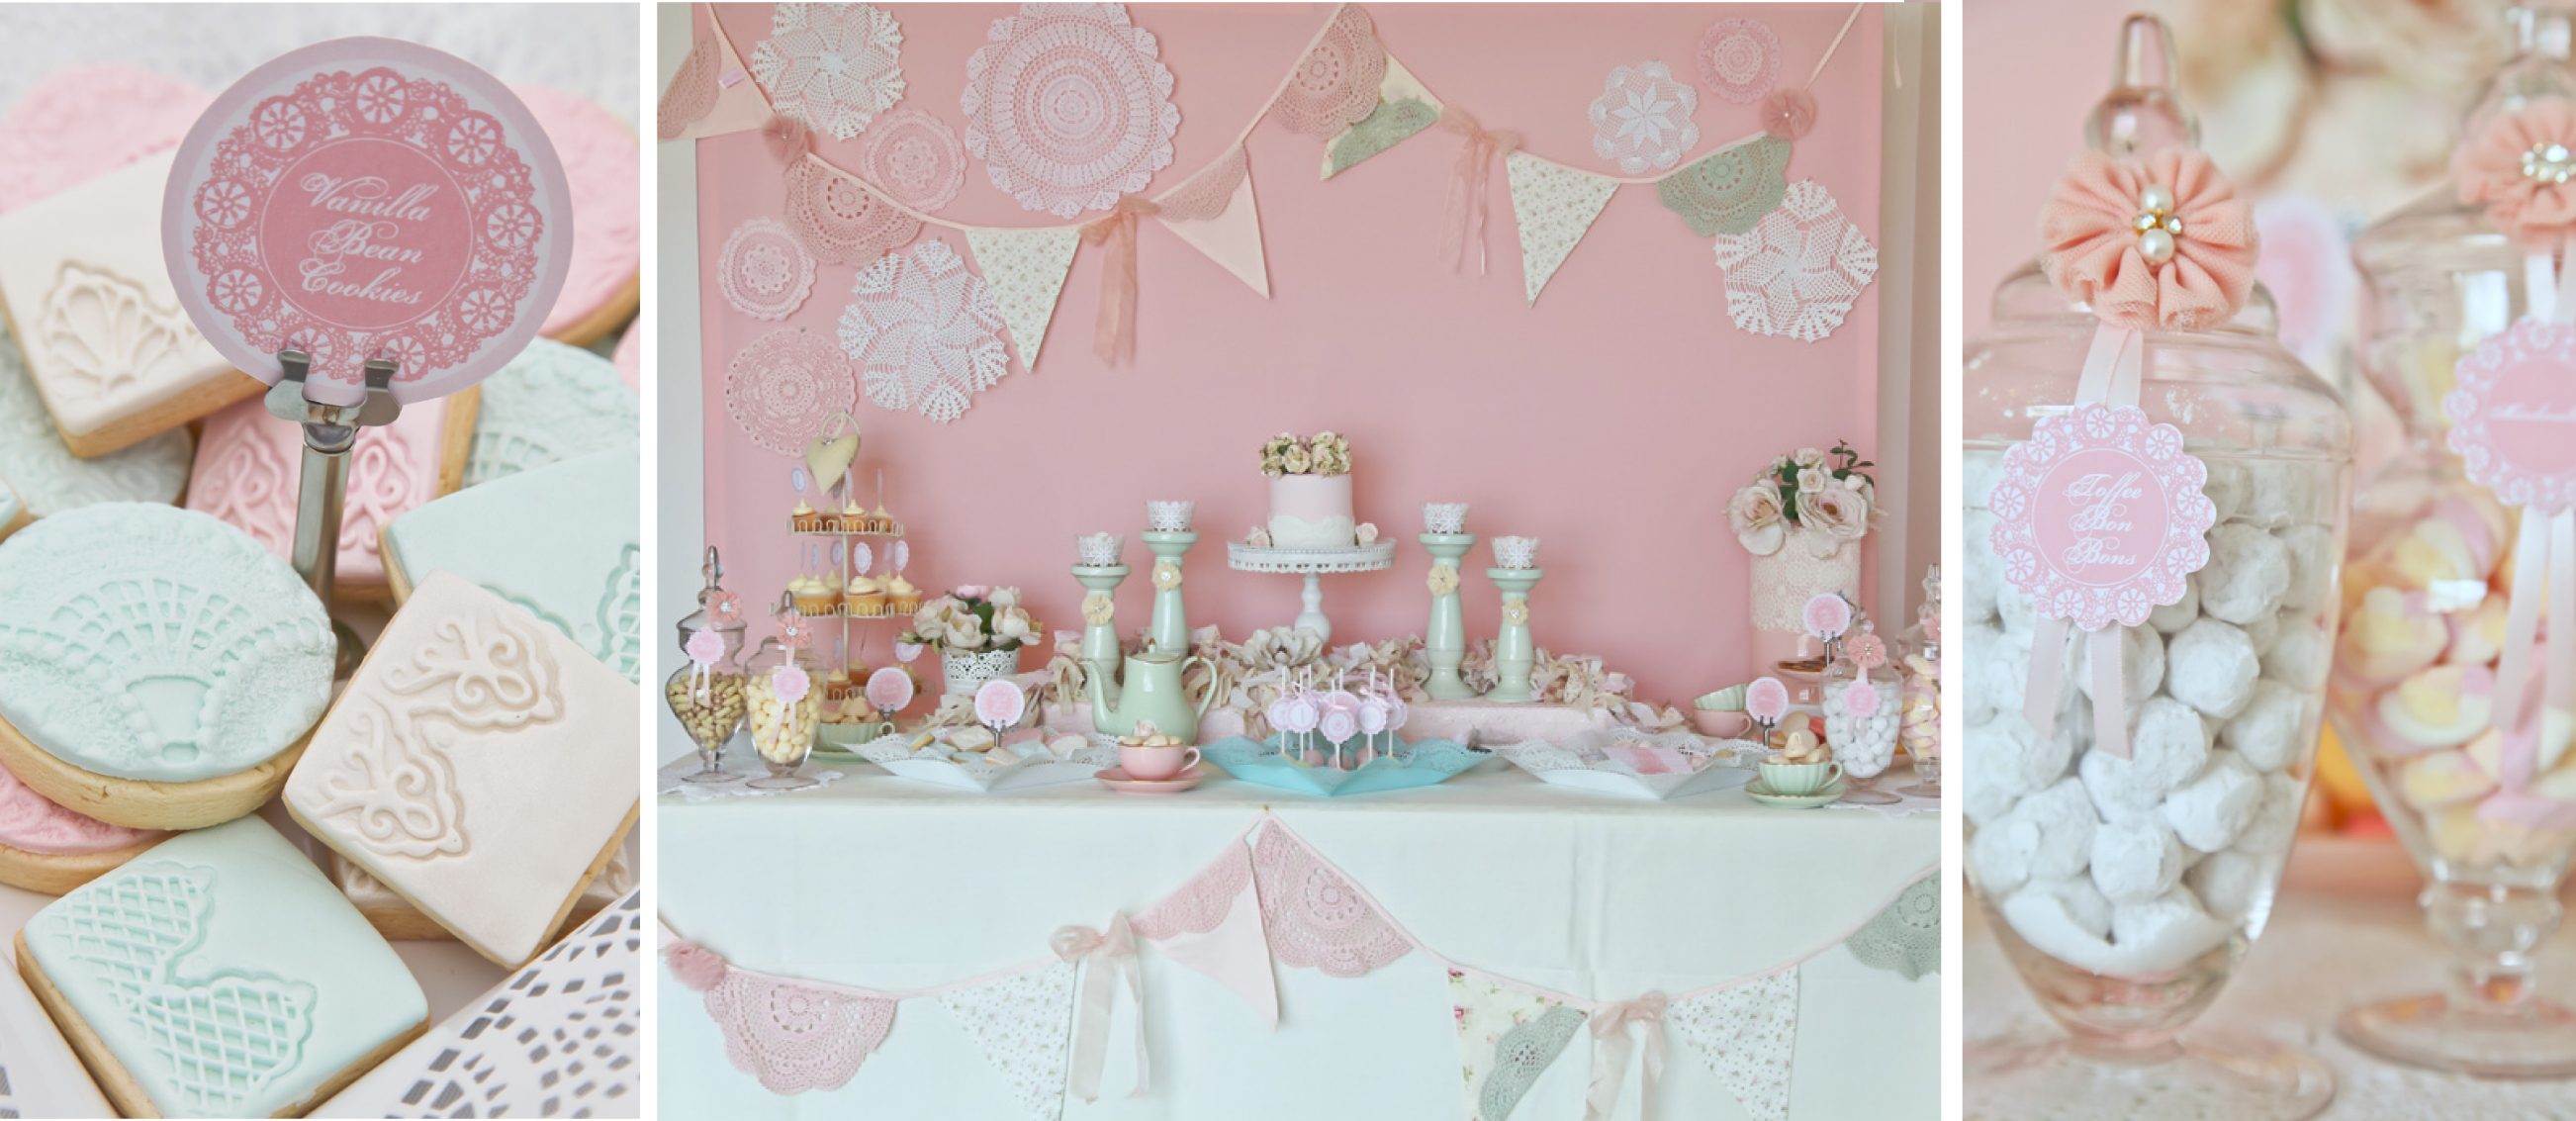 A Stunning Doily Tea Party by Kiss With Style Anders Ruff Custom